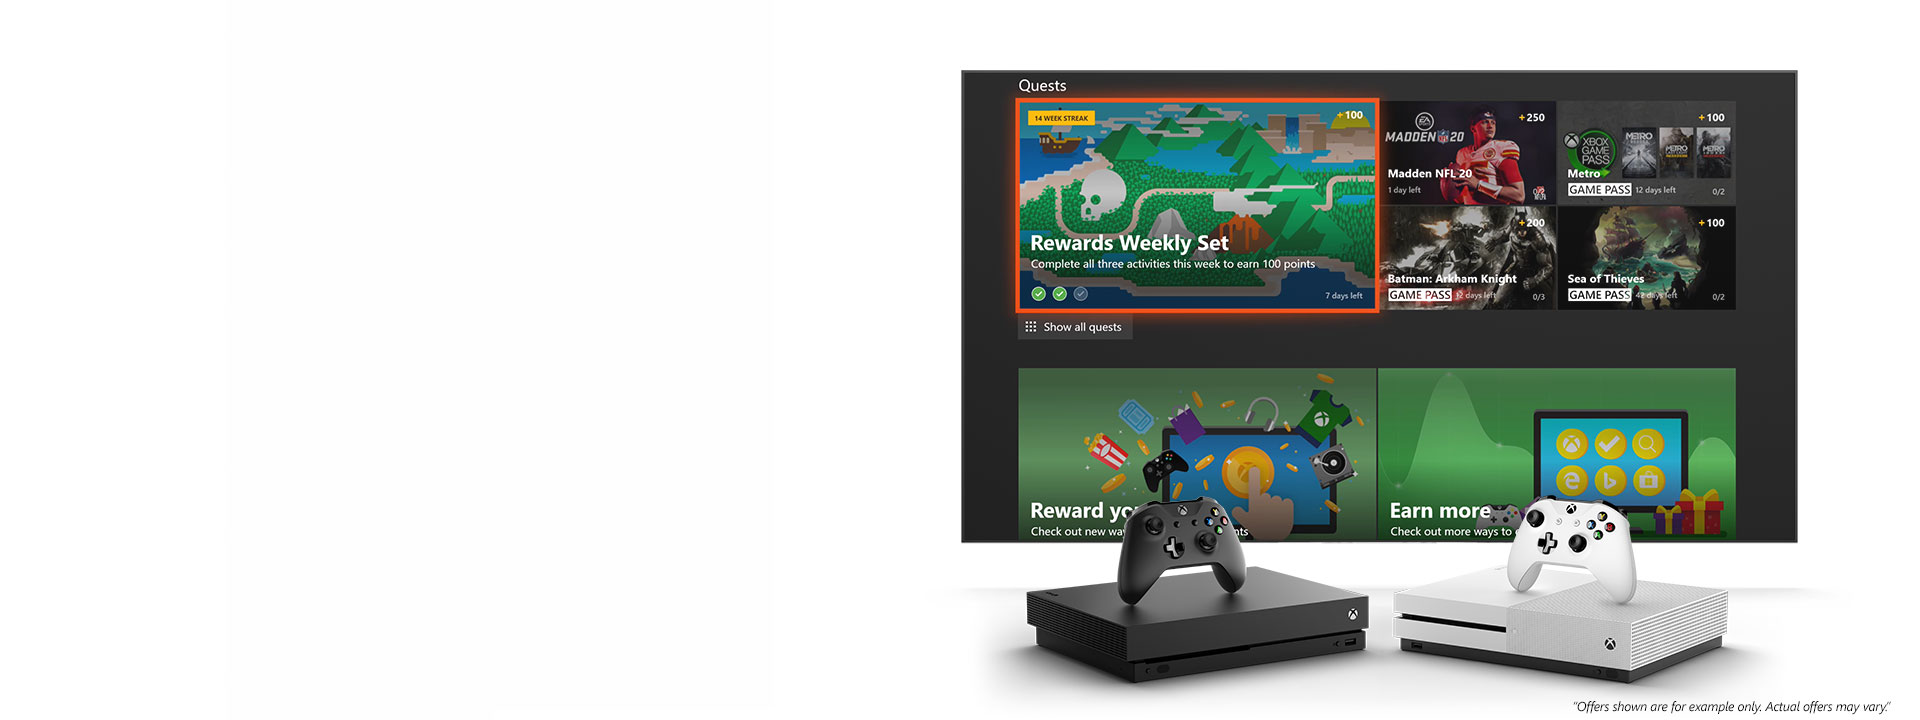 An Xbox One X and Xbox One S console in front of a screen displaying the Microsoft Rewards app with rewards. A disclaimer reads: Offers shown are for example only. Actual offers may vary.